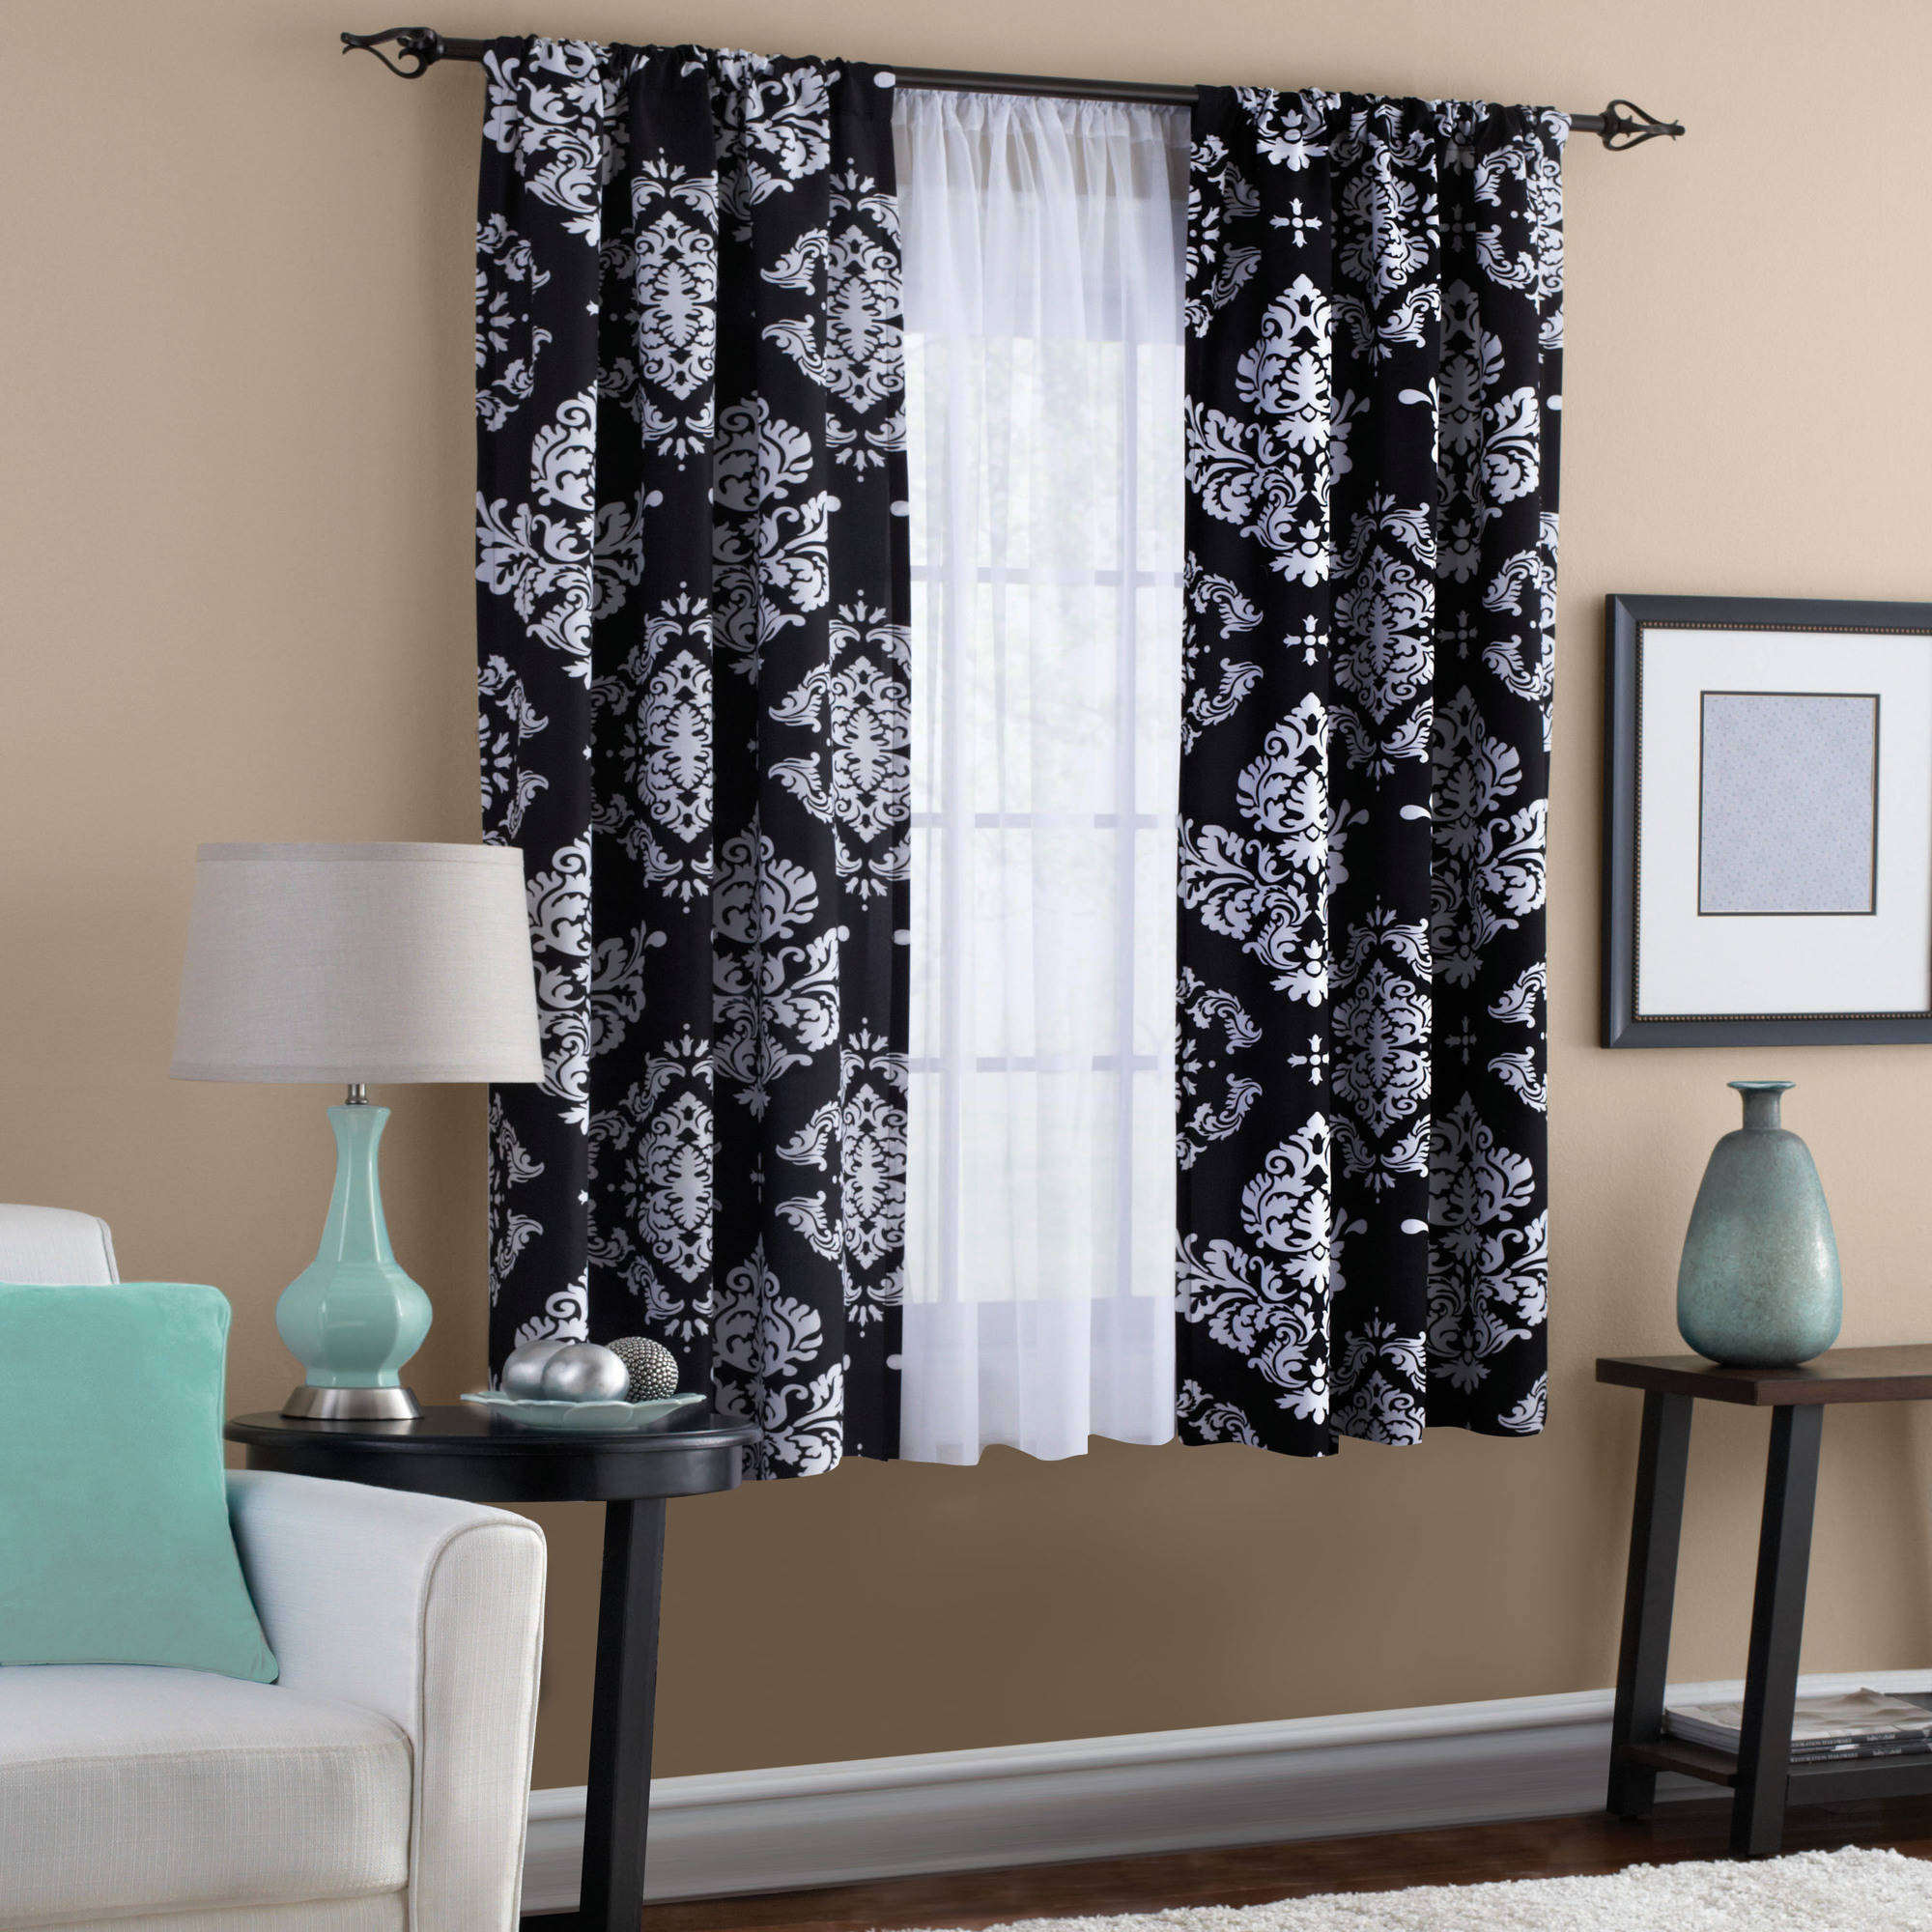 Classic Noir Black and White Window Curtain Walmart